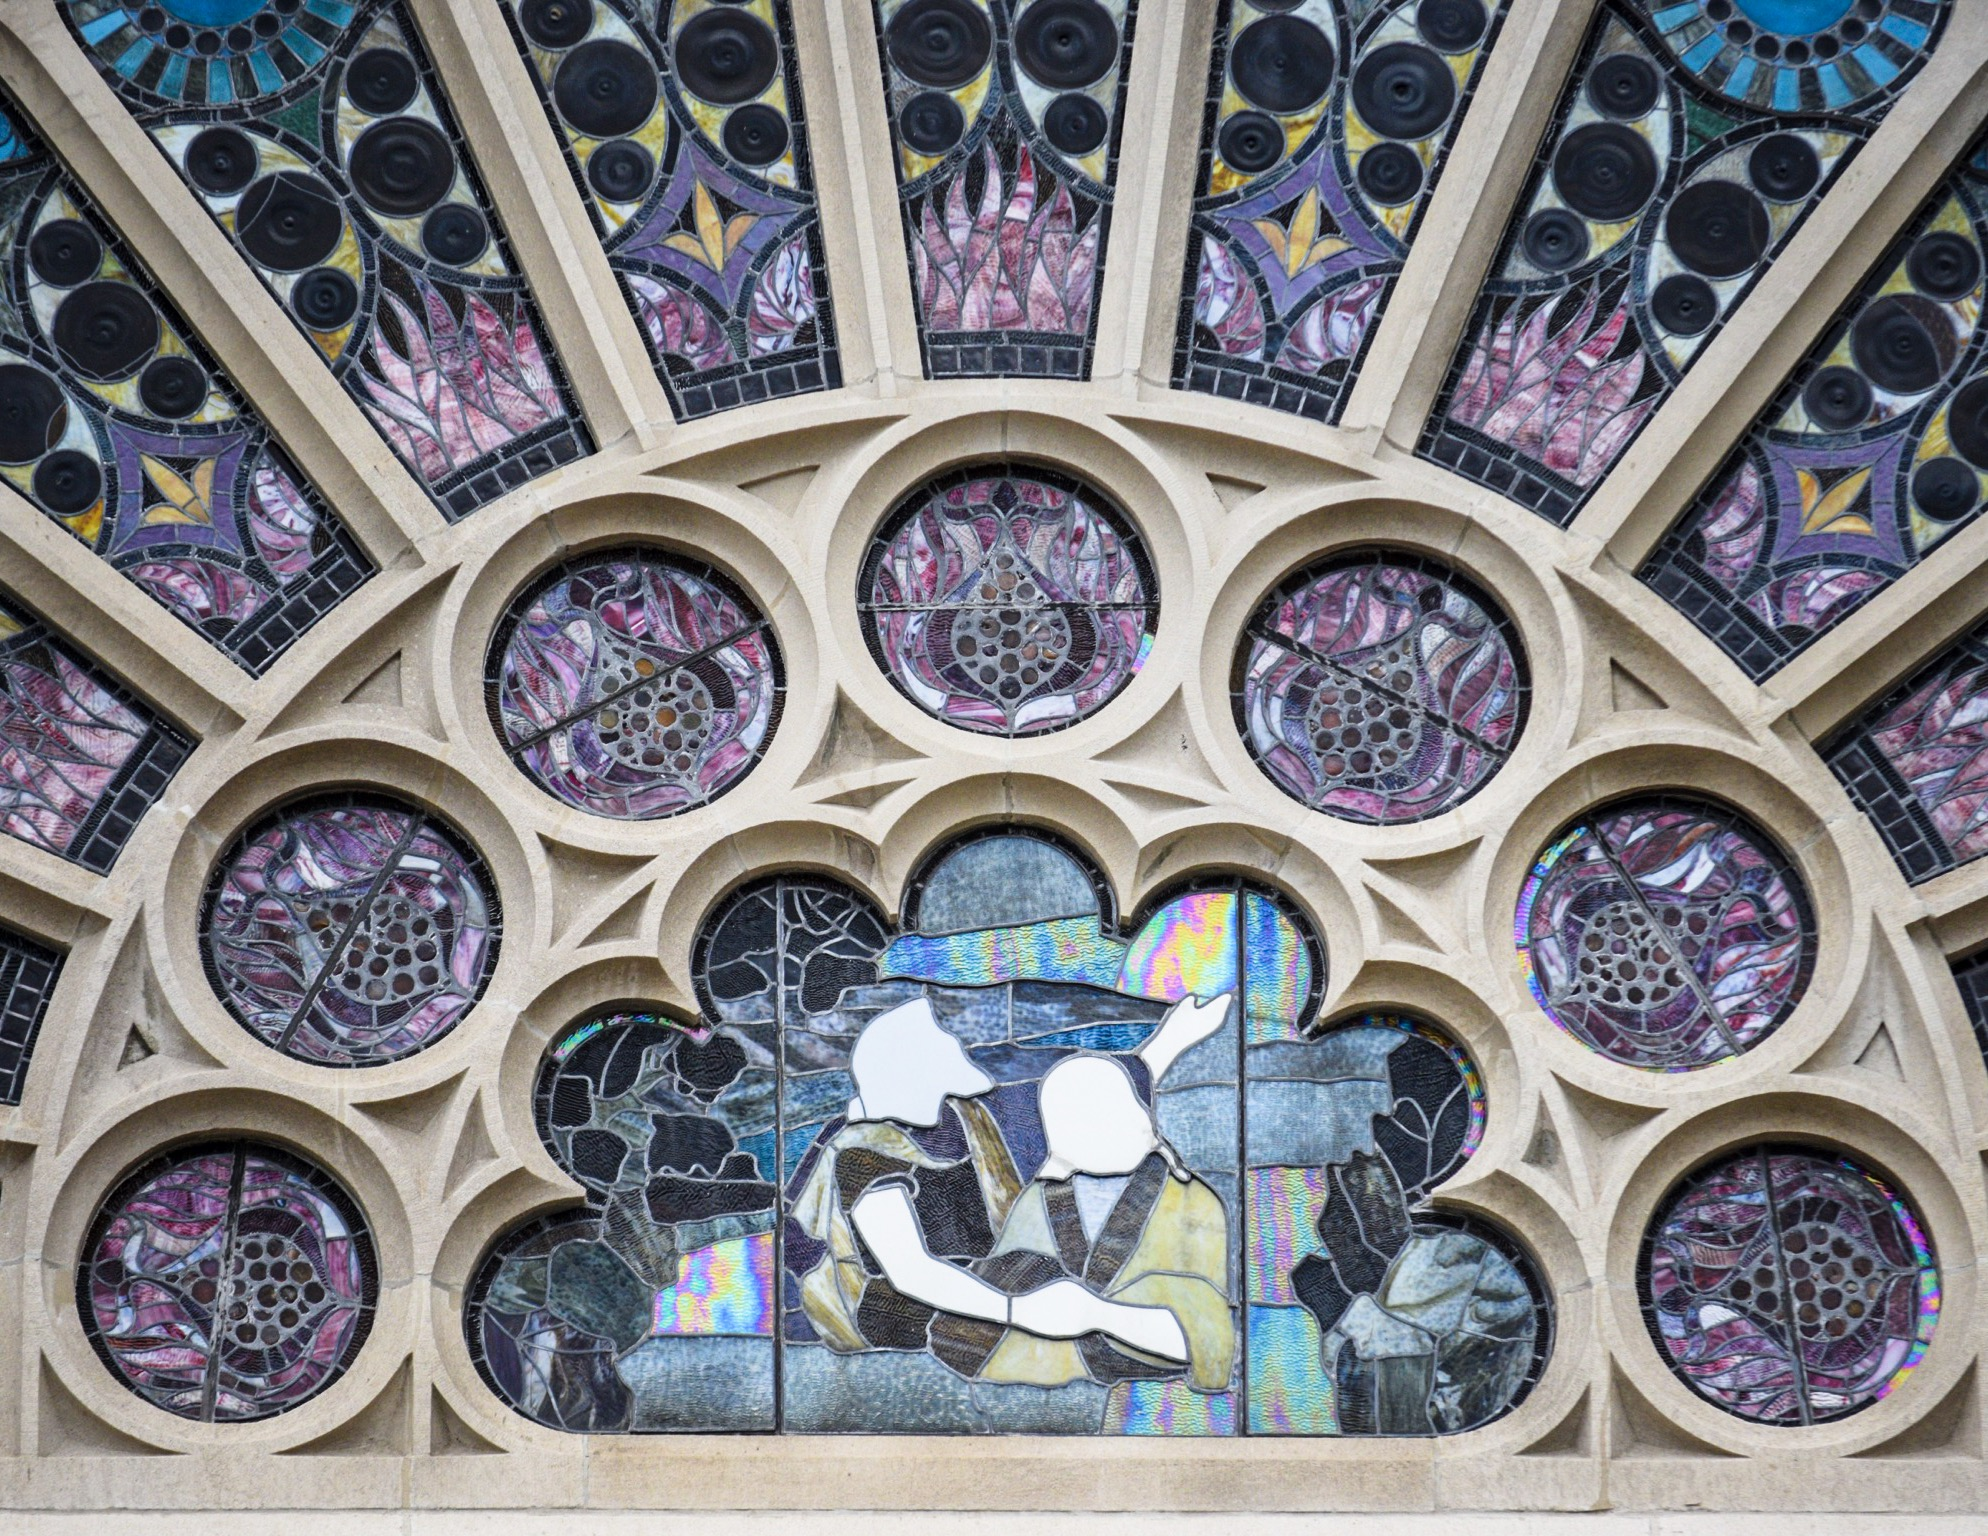 Stained glass at the Temple Performing Arts Center.